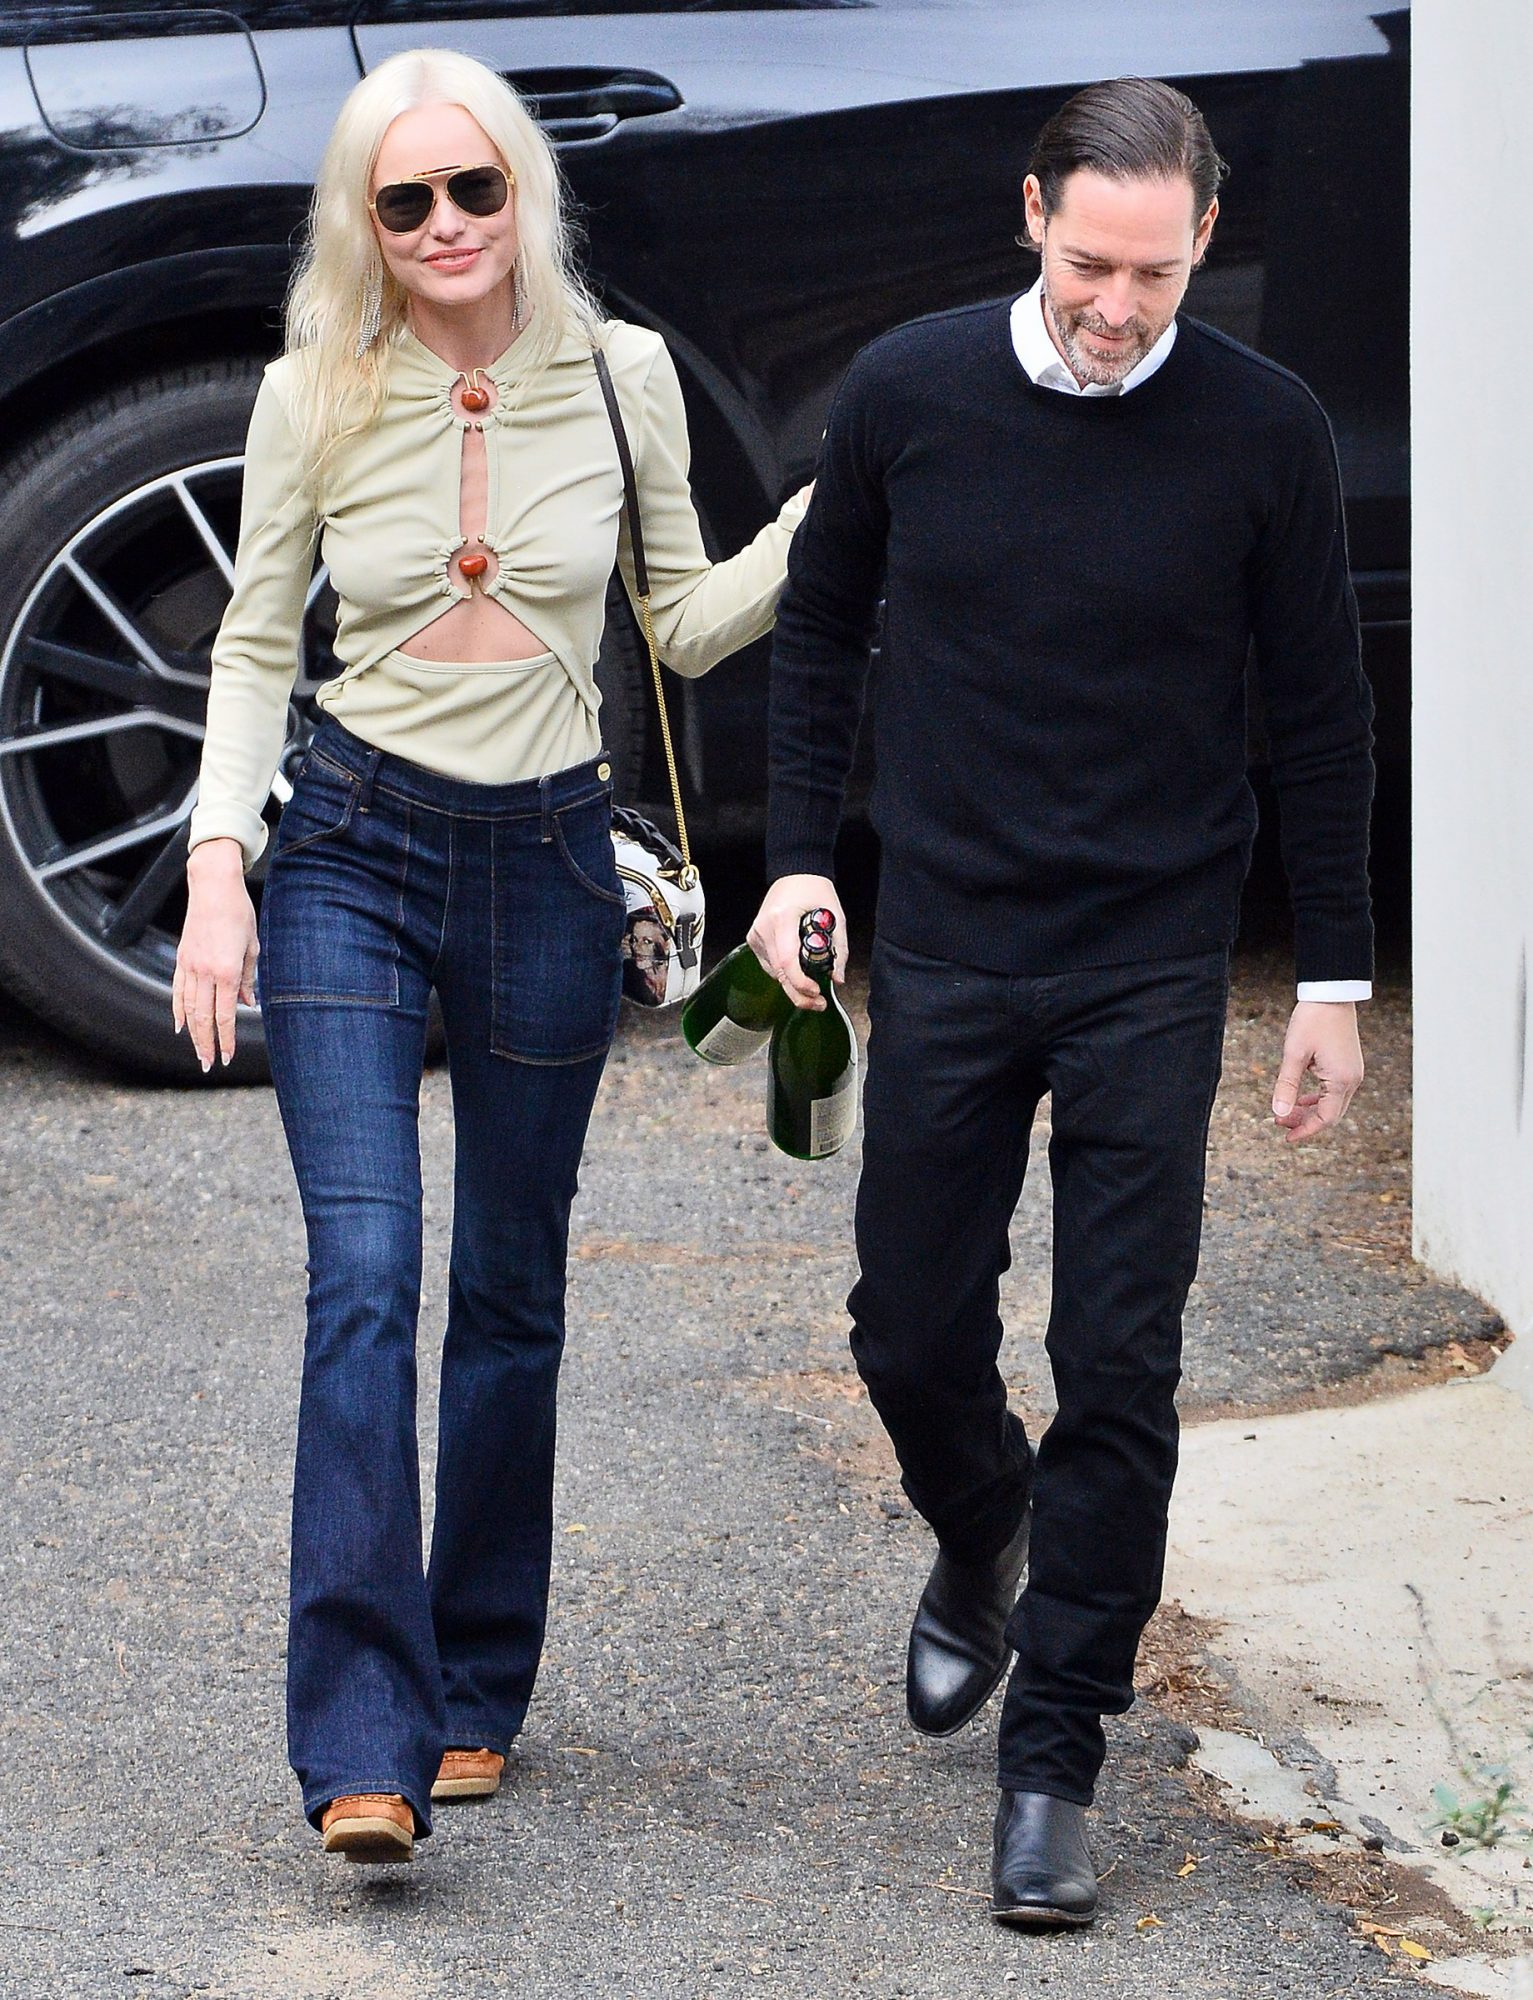 Kate Bosworth celebrates her 38th birthday with her husband Michael Polish as they head to a friend's house with a couple of bottles to celebrate